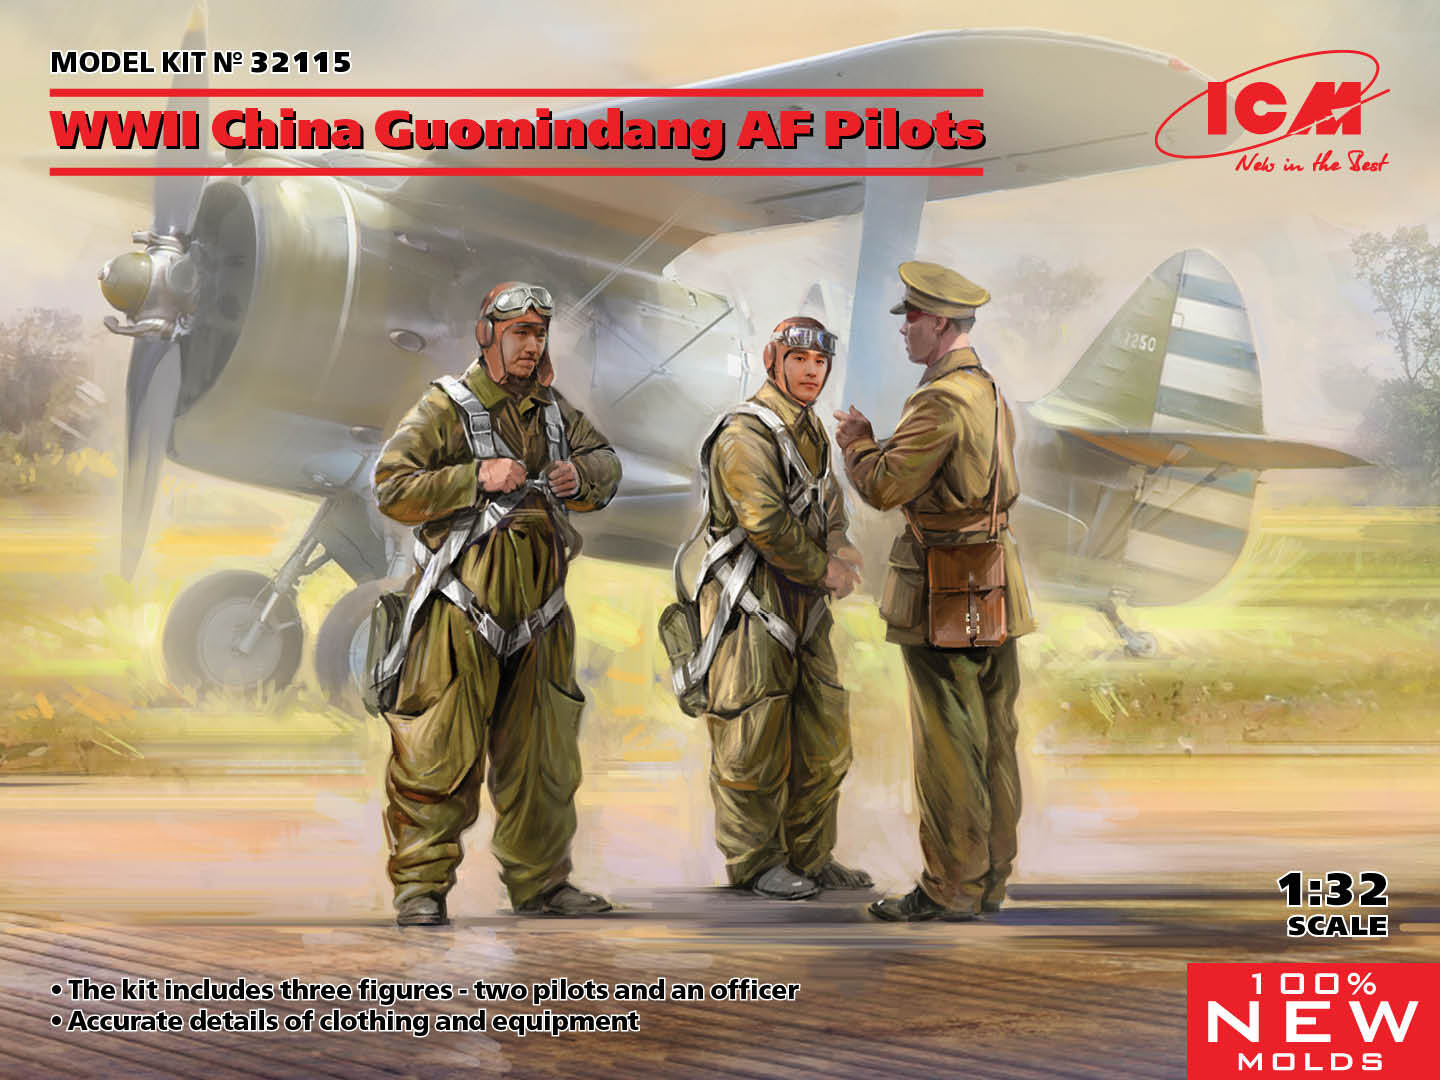 ICM 1/32 WWII China Guomindang AF Pilots (100% new molds)